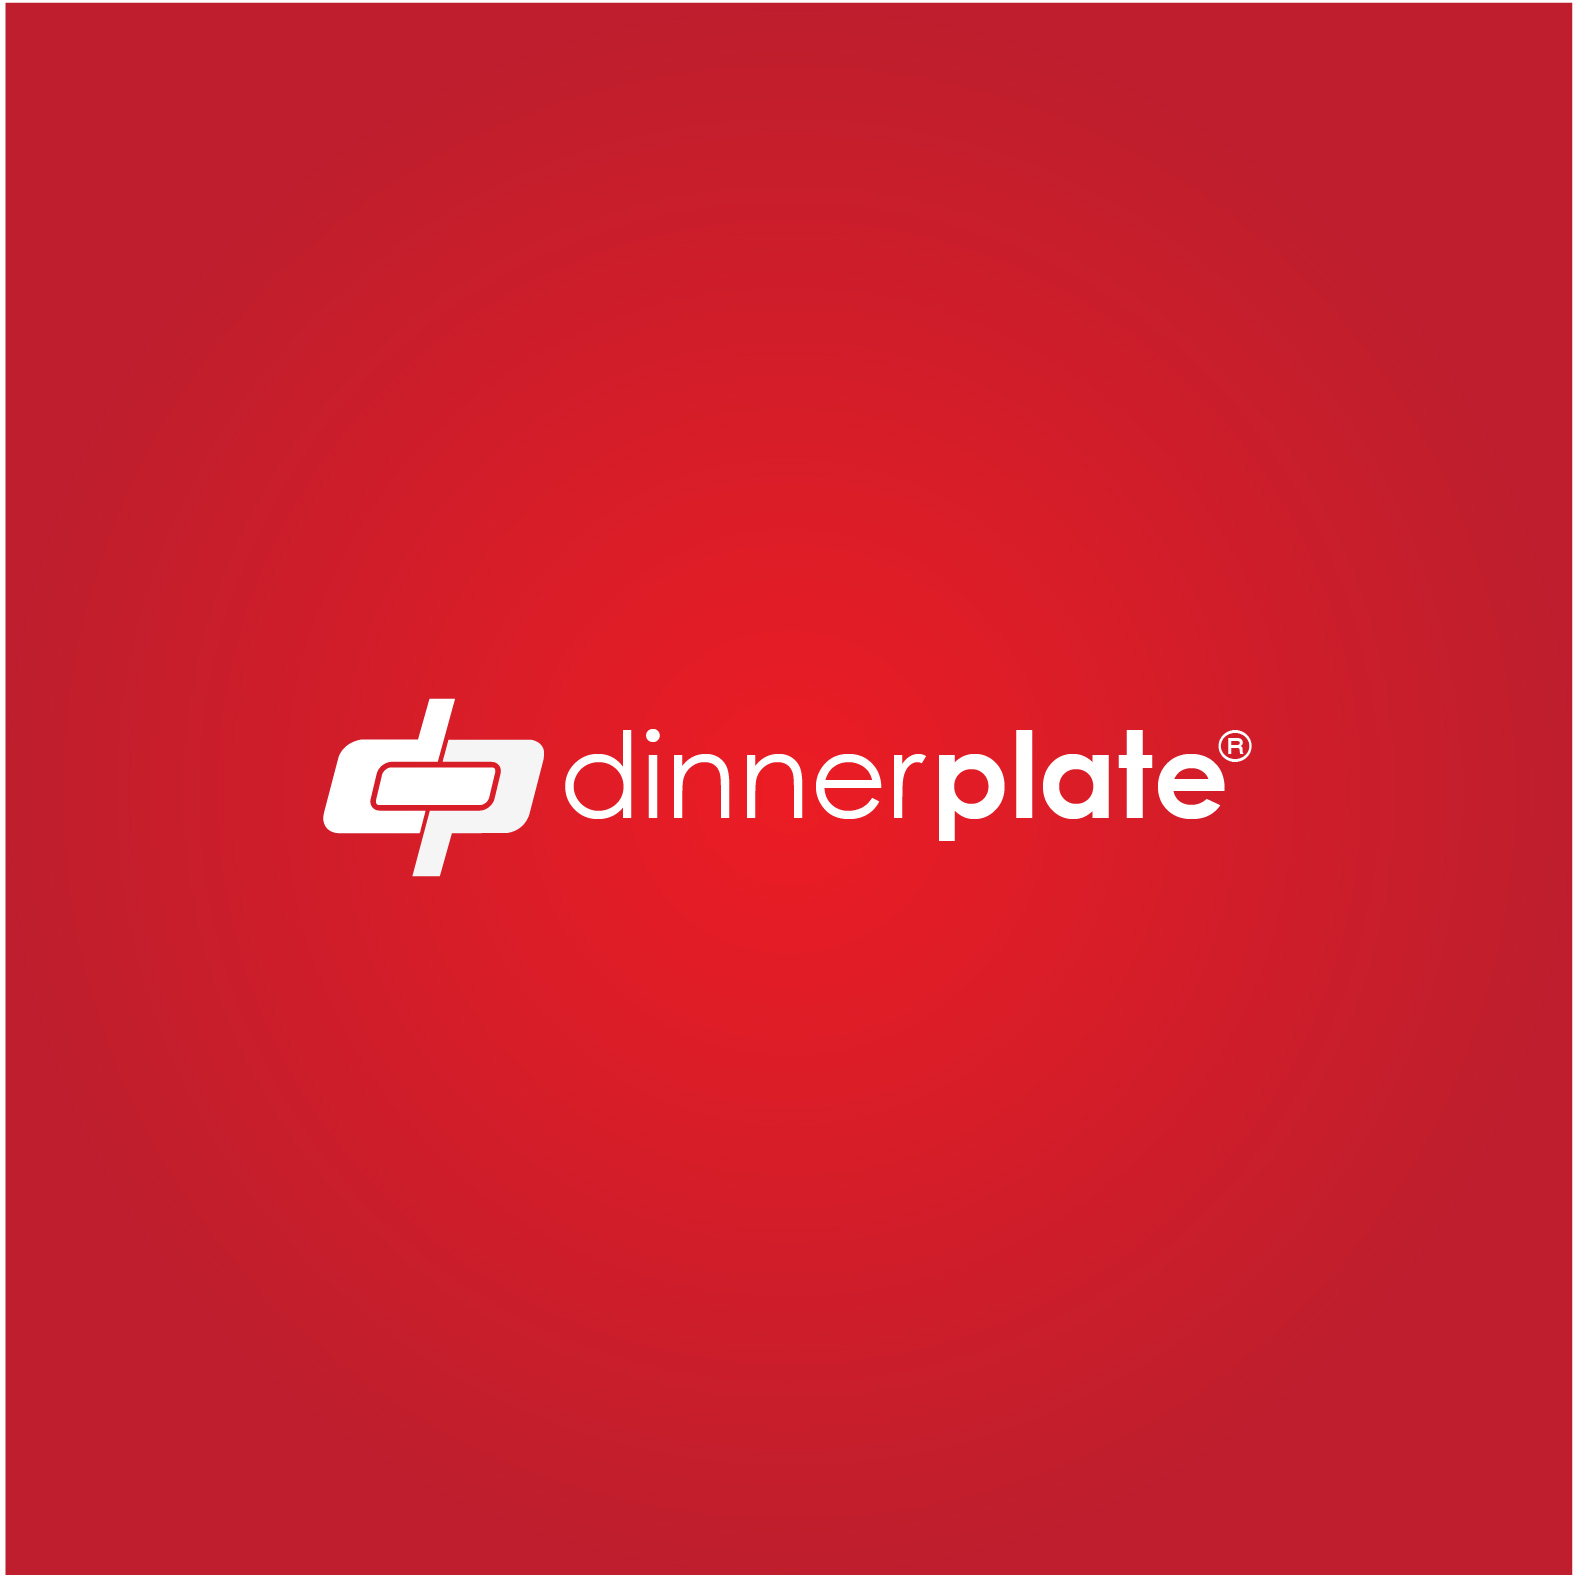 Logo Design by lagalag - Entry No. 97 in the Logo Design Contest Imaginative Logo Design for Dinner Plate.